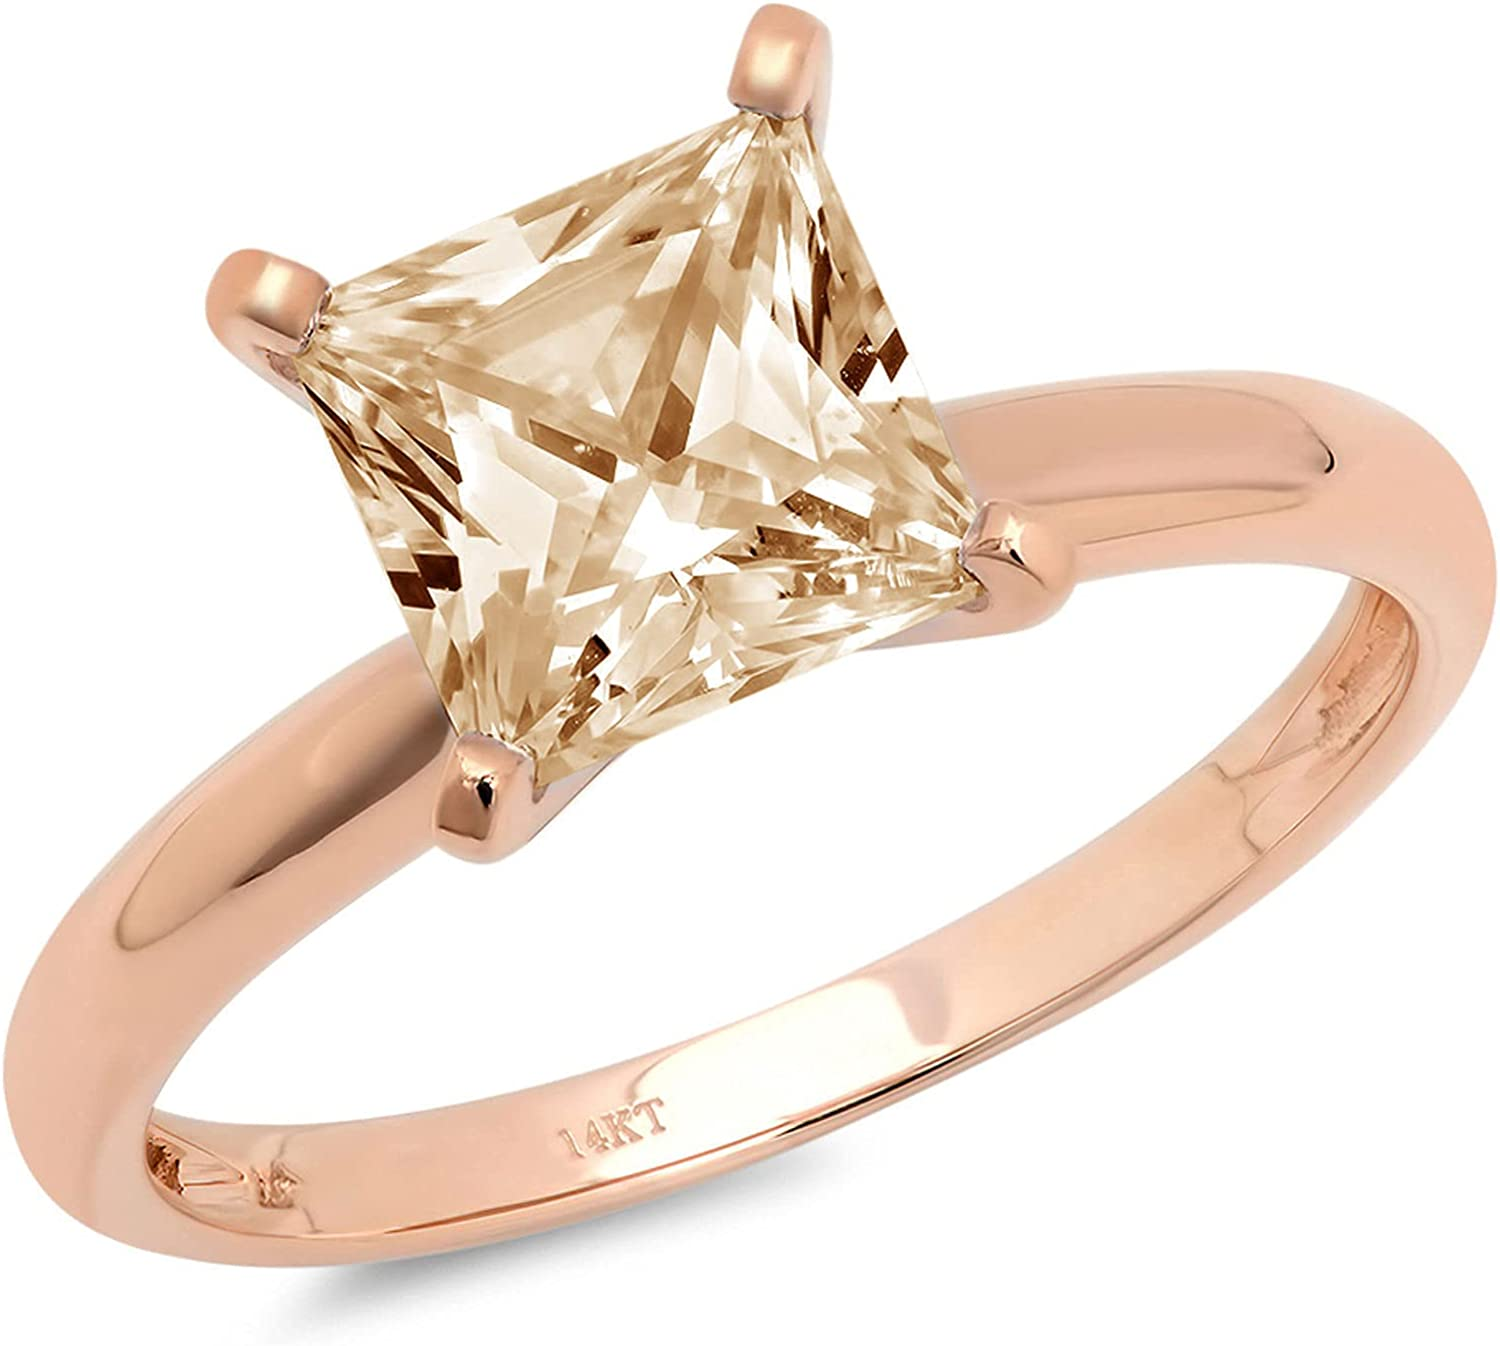 Clara Pucci 2.5 ct Brilliant Princess Cut Solitaire Natural Brown Morganite Gem 4-Prong Engagement Wedding Bridal Promise Anniversary Ring in Solid 18K Pink Rose Gold for Women